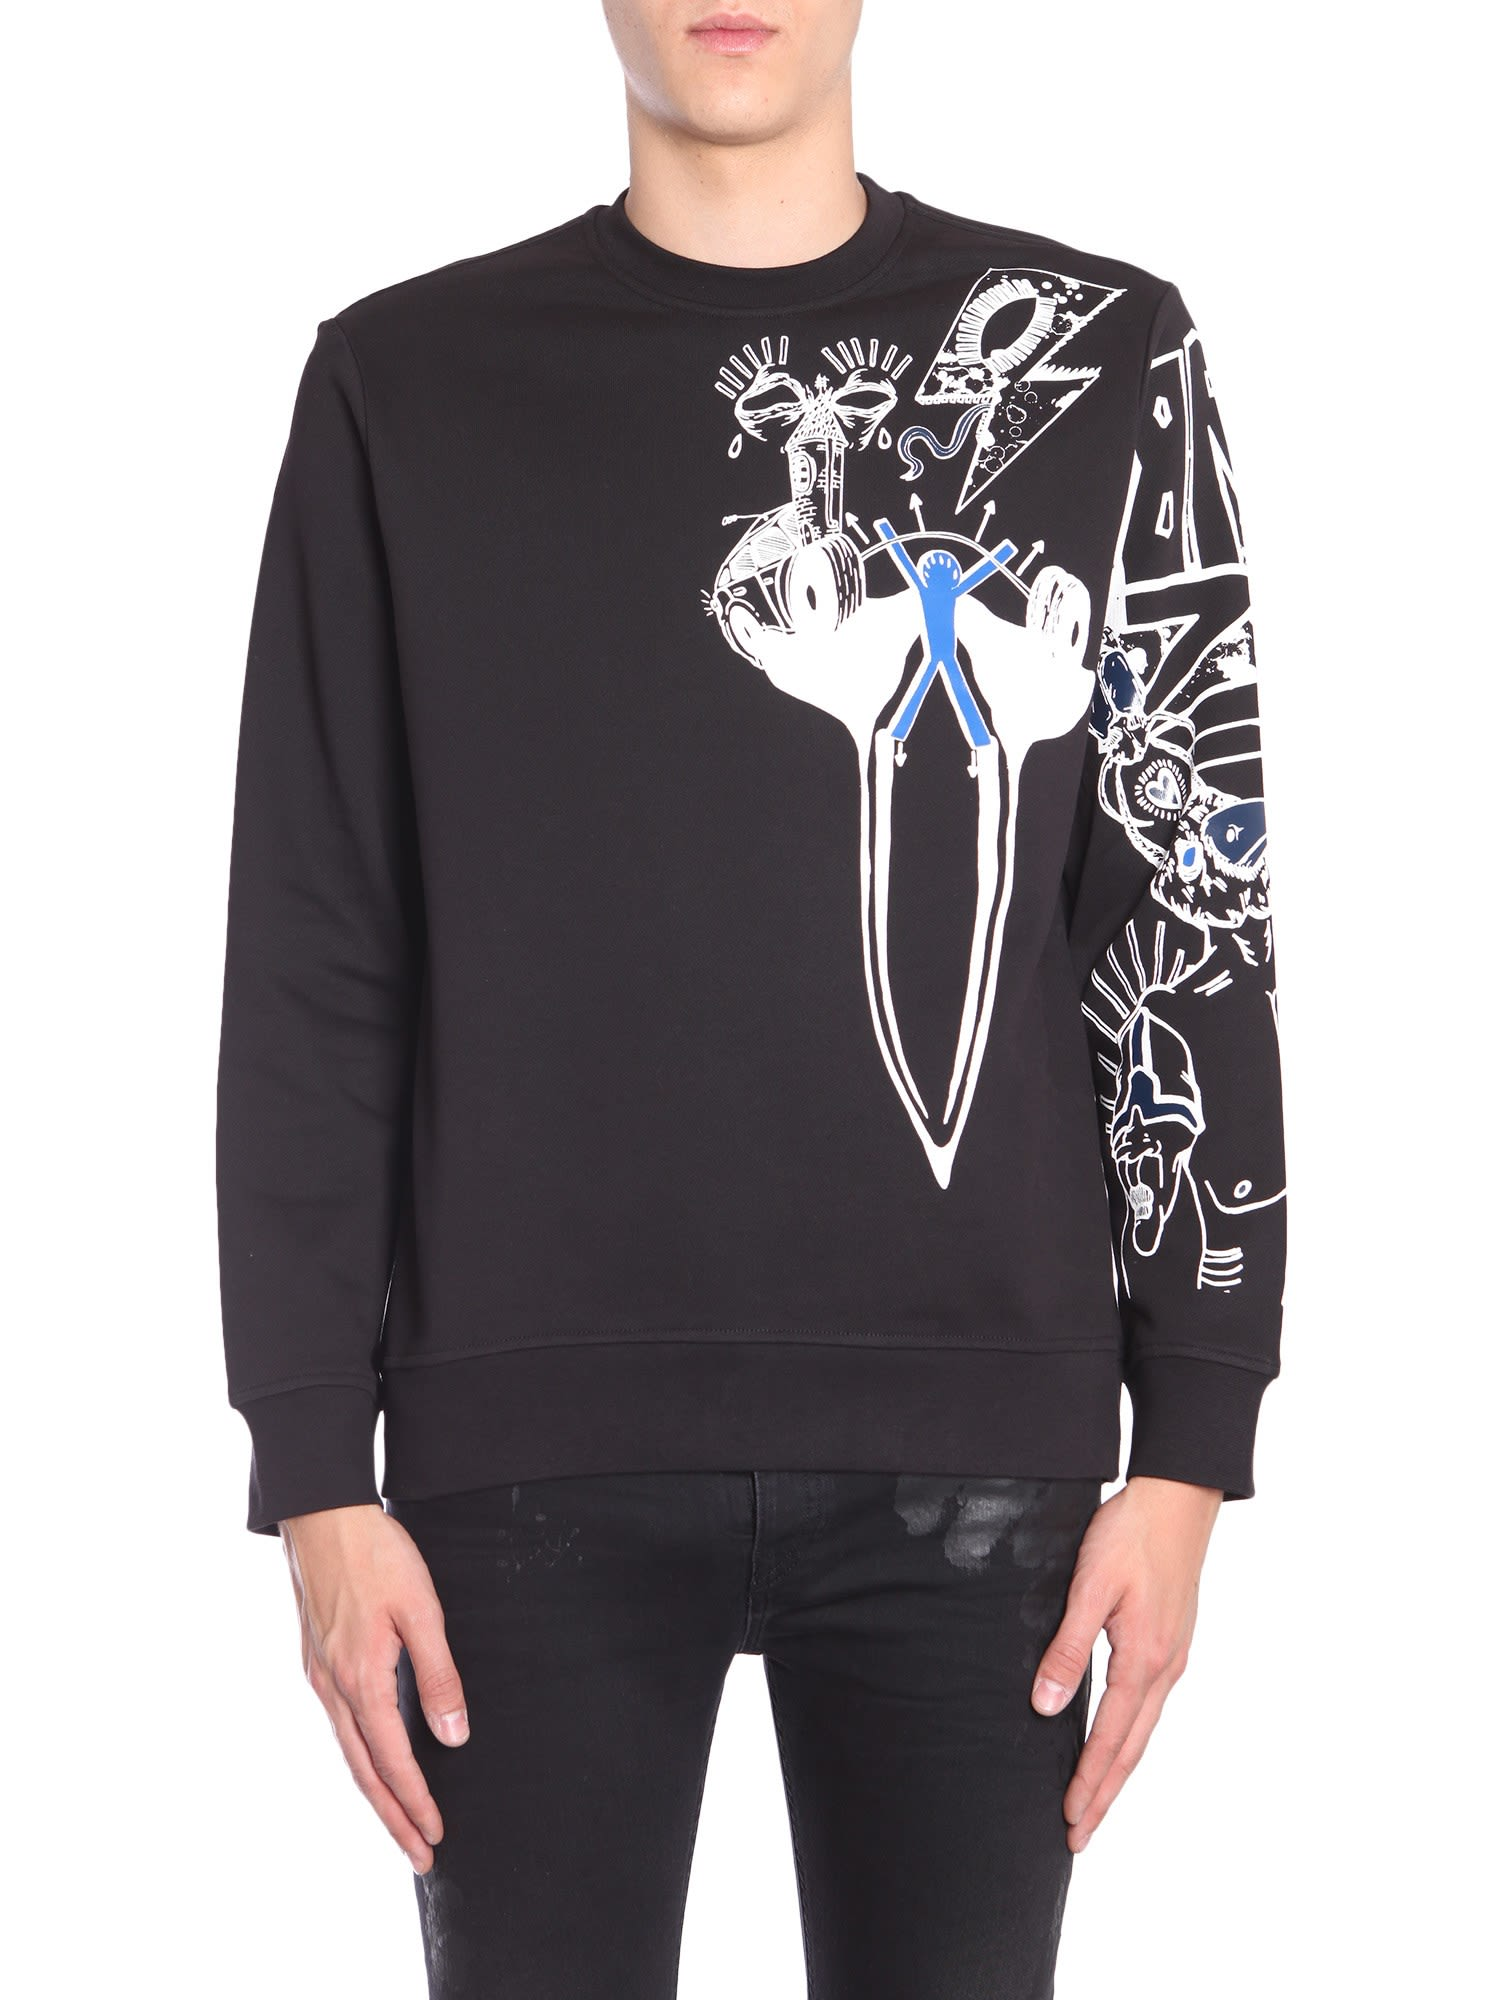 Diesel Black Gold Sneilb-graffiti Sweatshirt